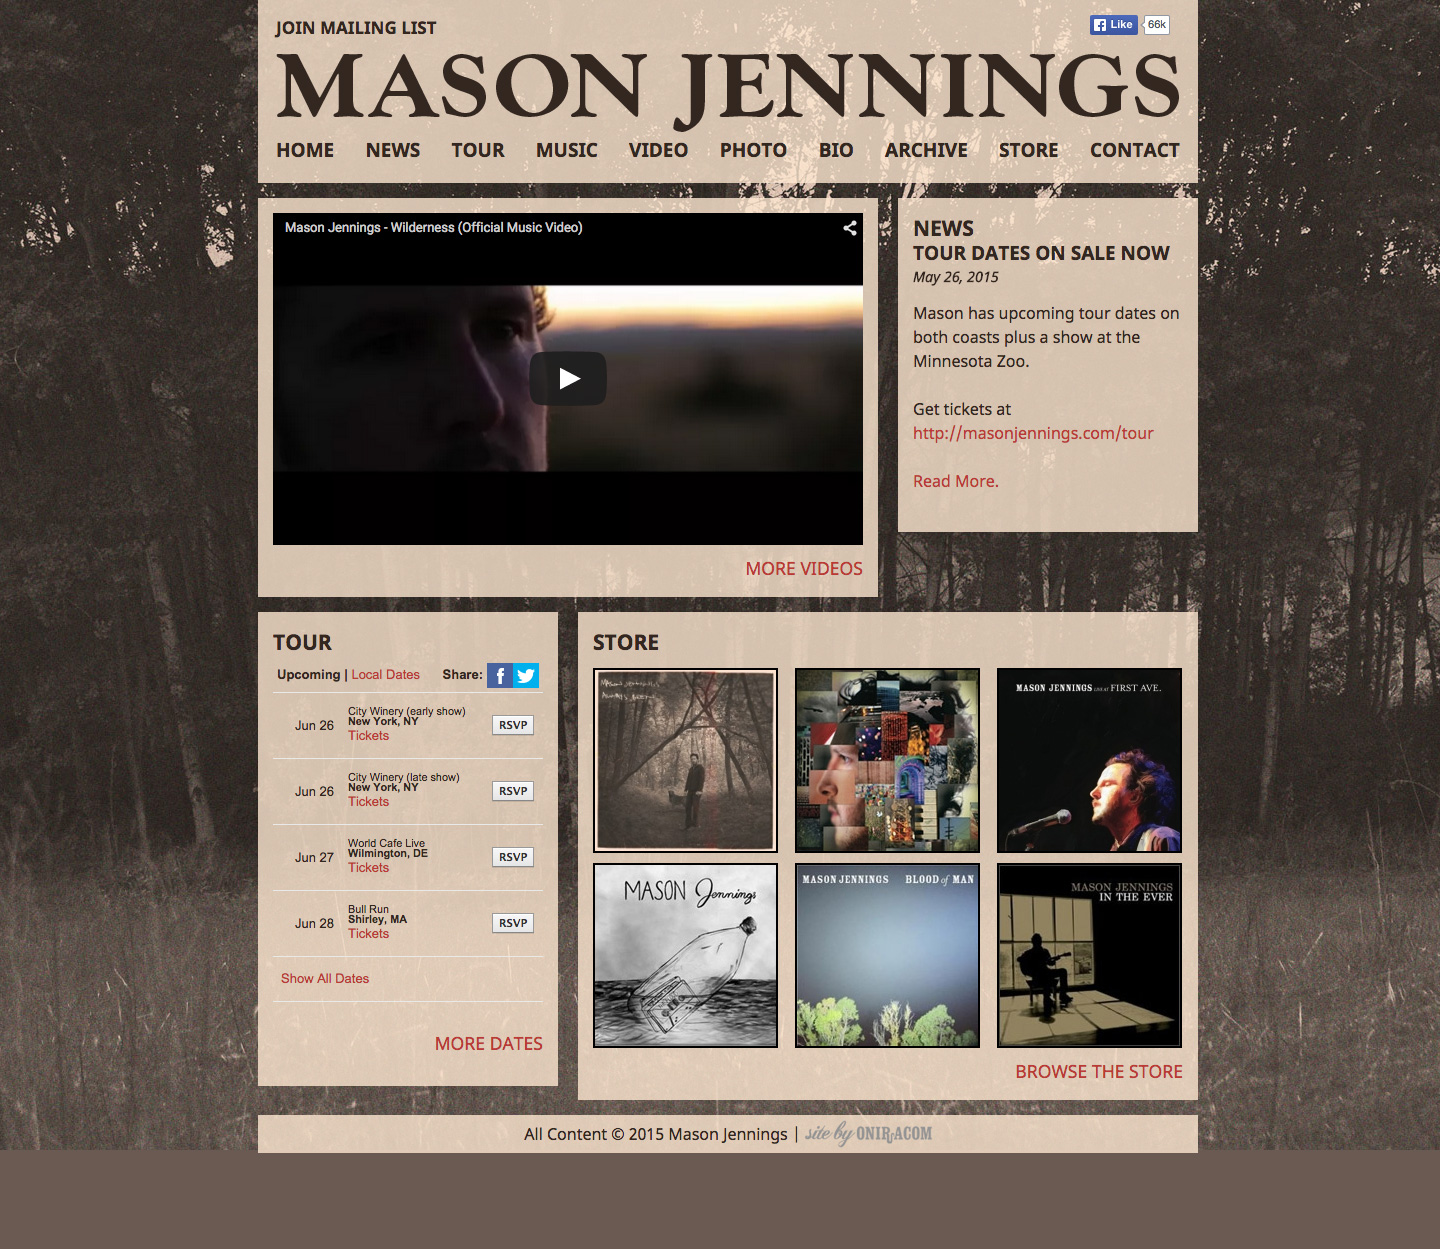 Mason Jennings website built by Aquatic in San Francisco